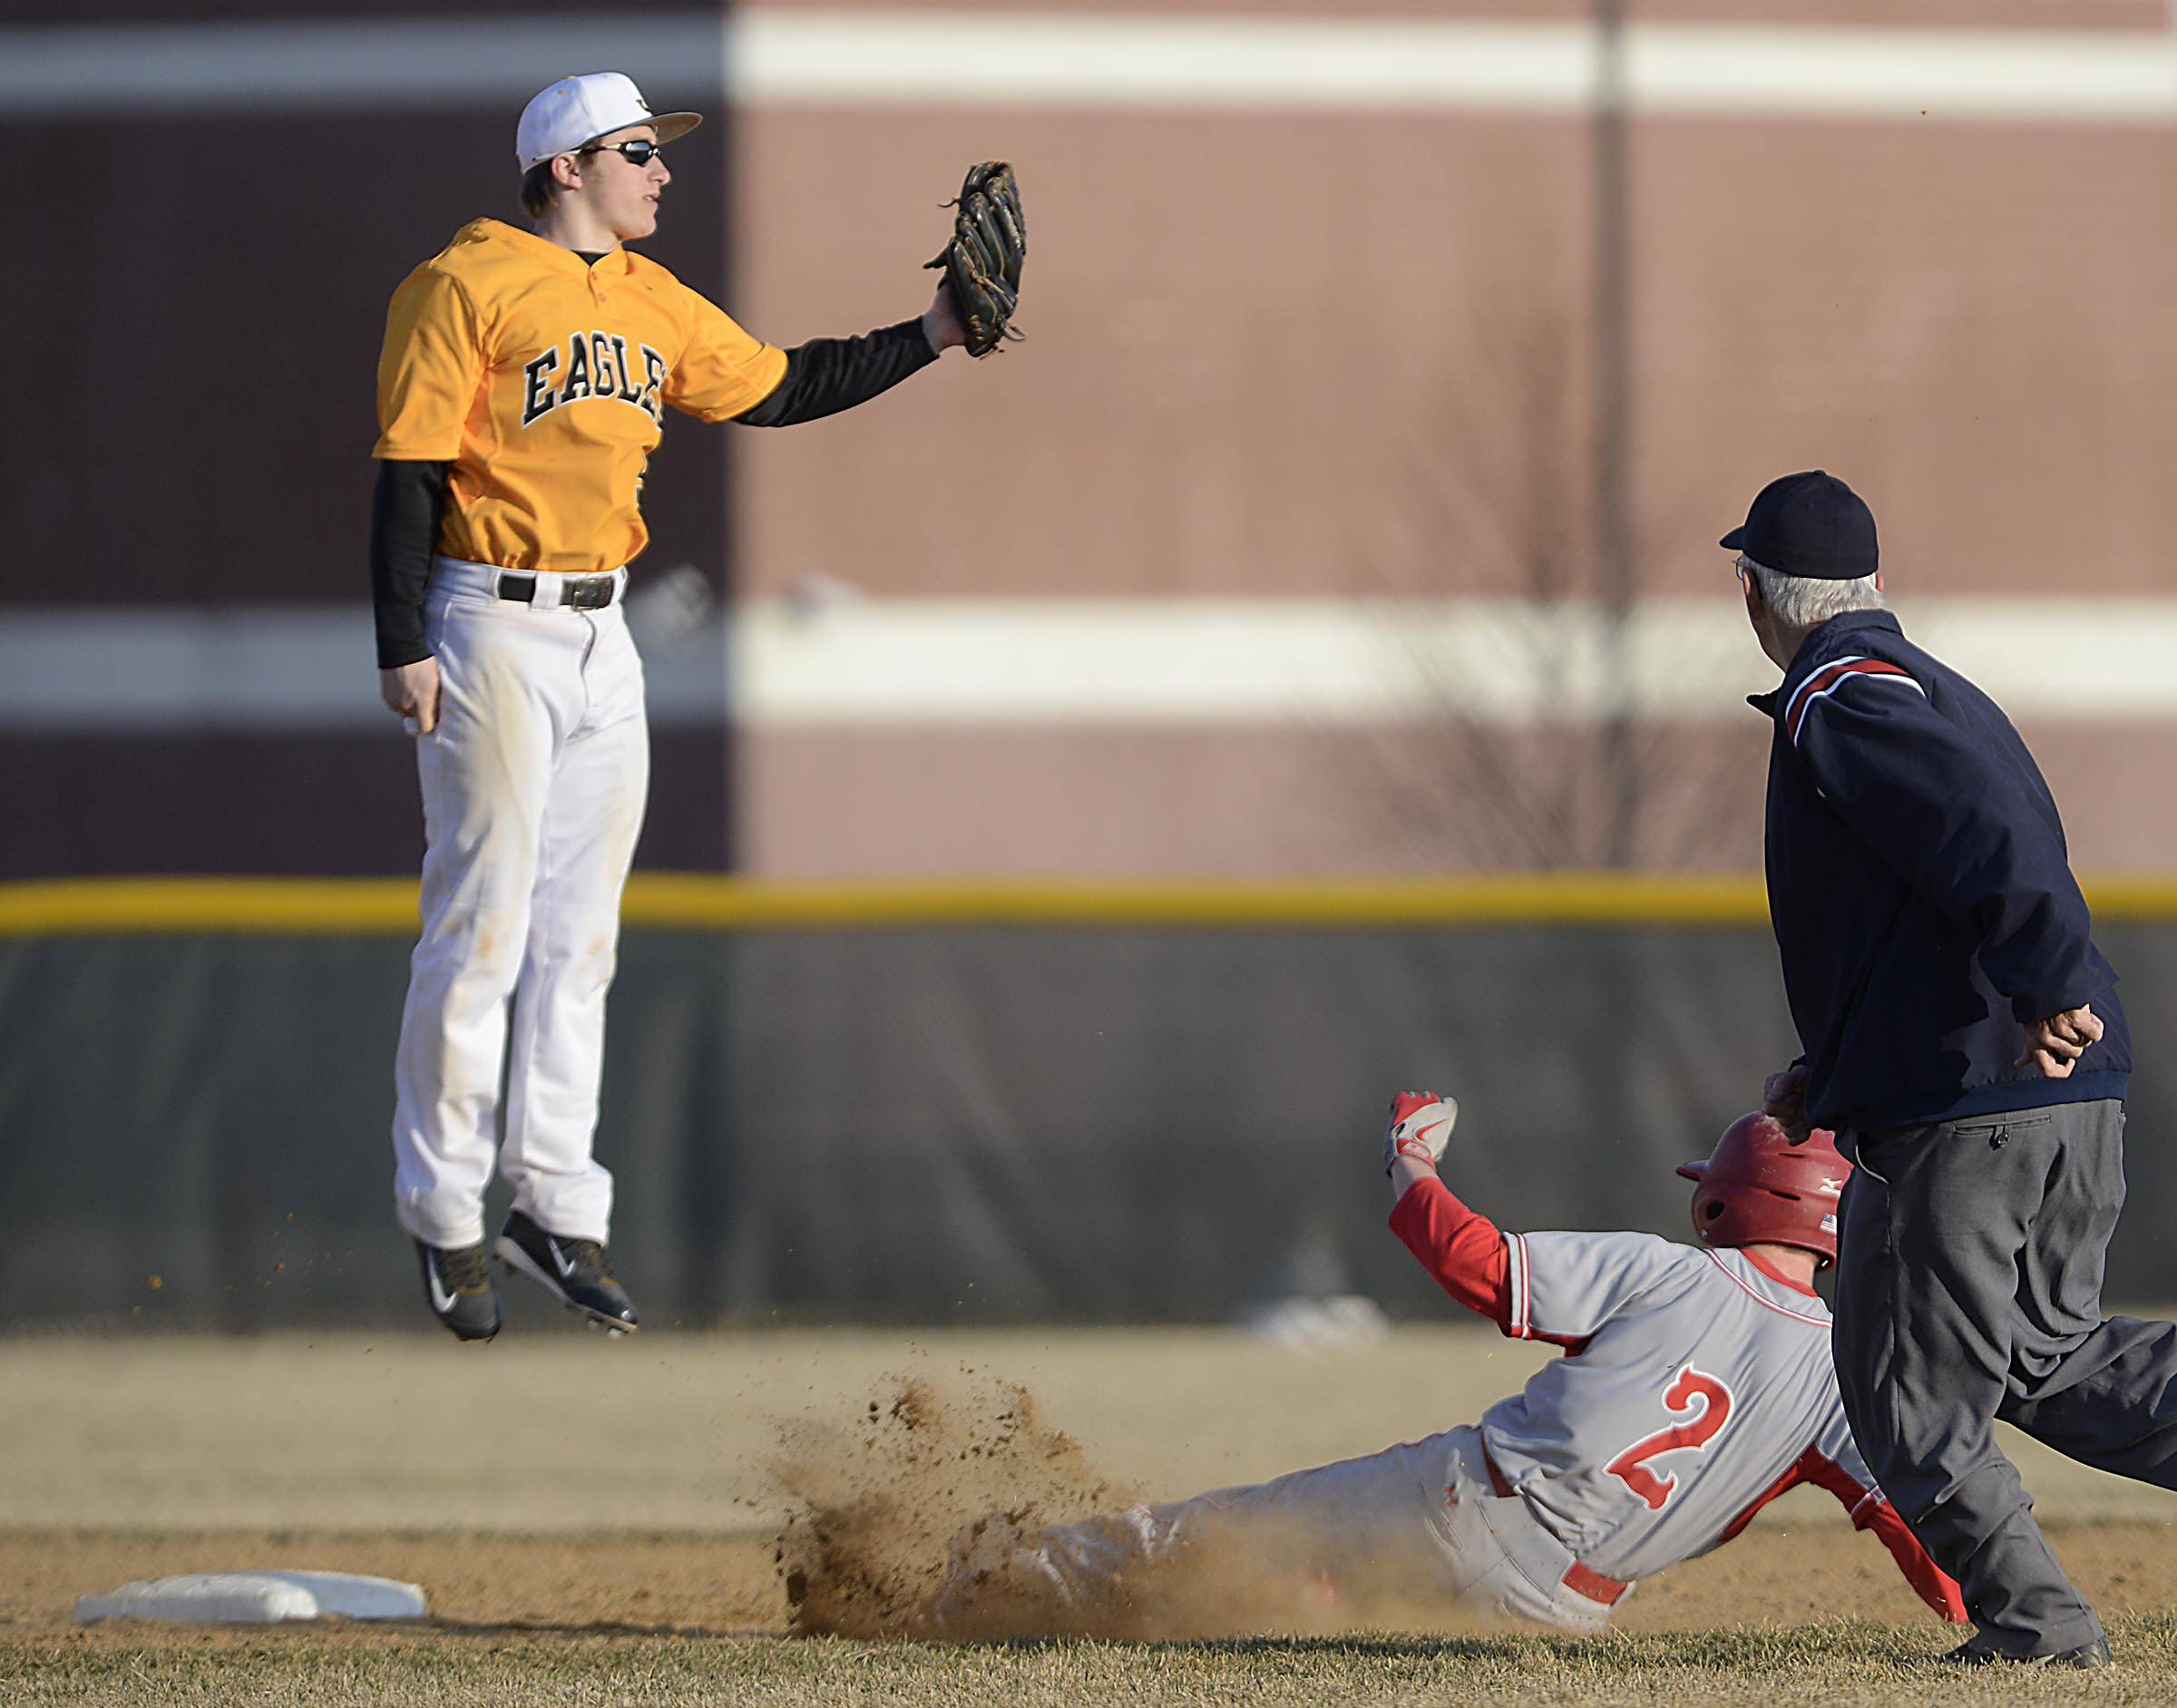 Barrington's Nick Caminiti slides safely into second base as the throw goes past Jacobs second baseman Grant Kale Wednesday in Algonquin.